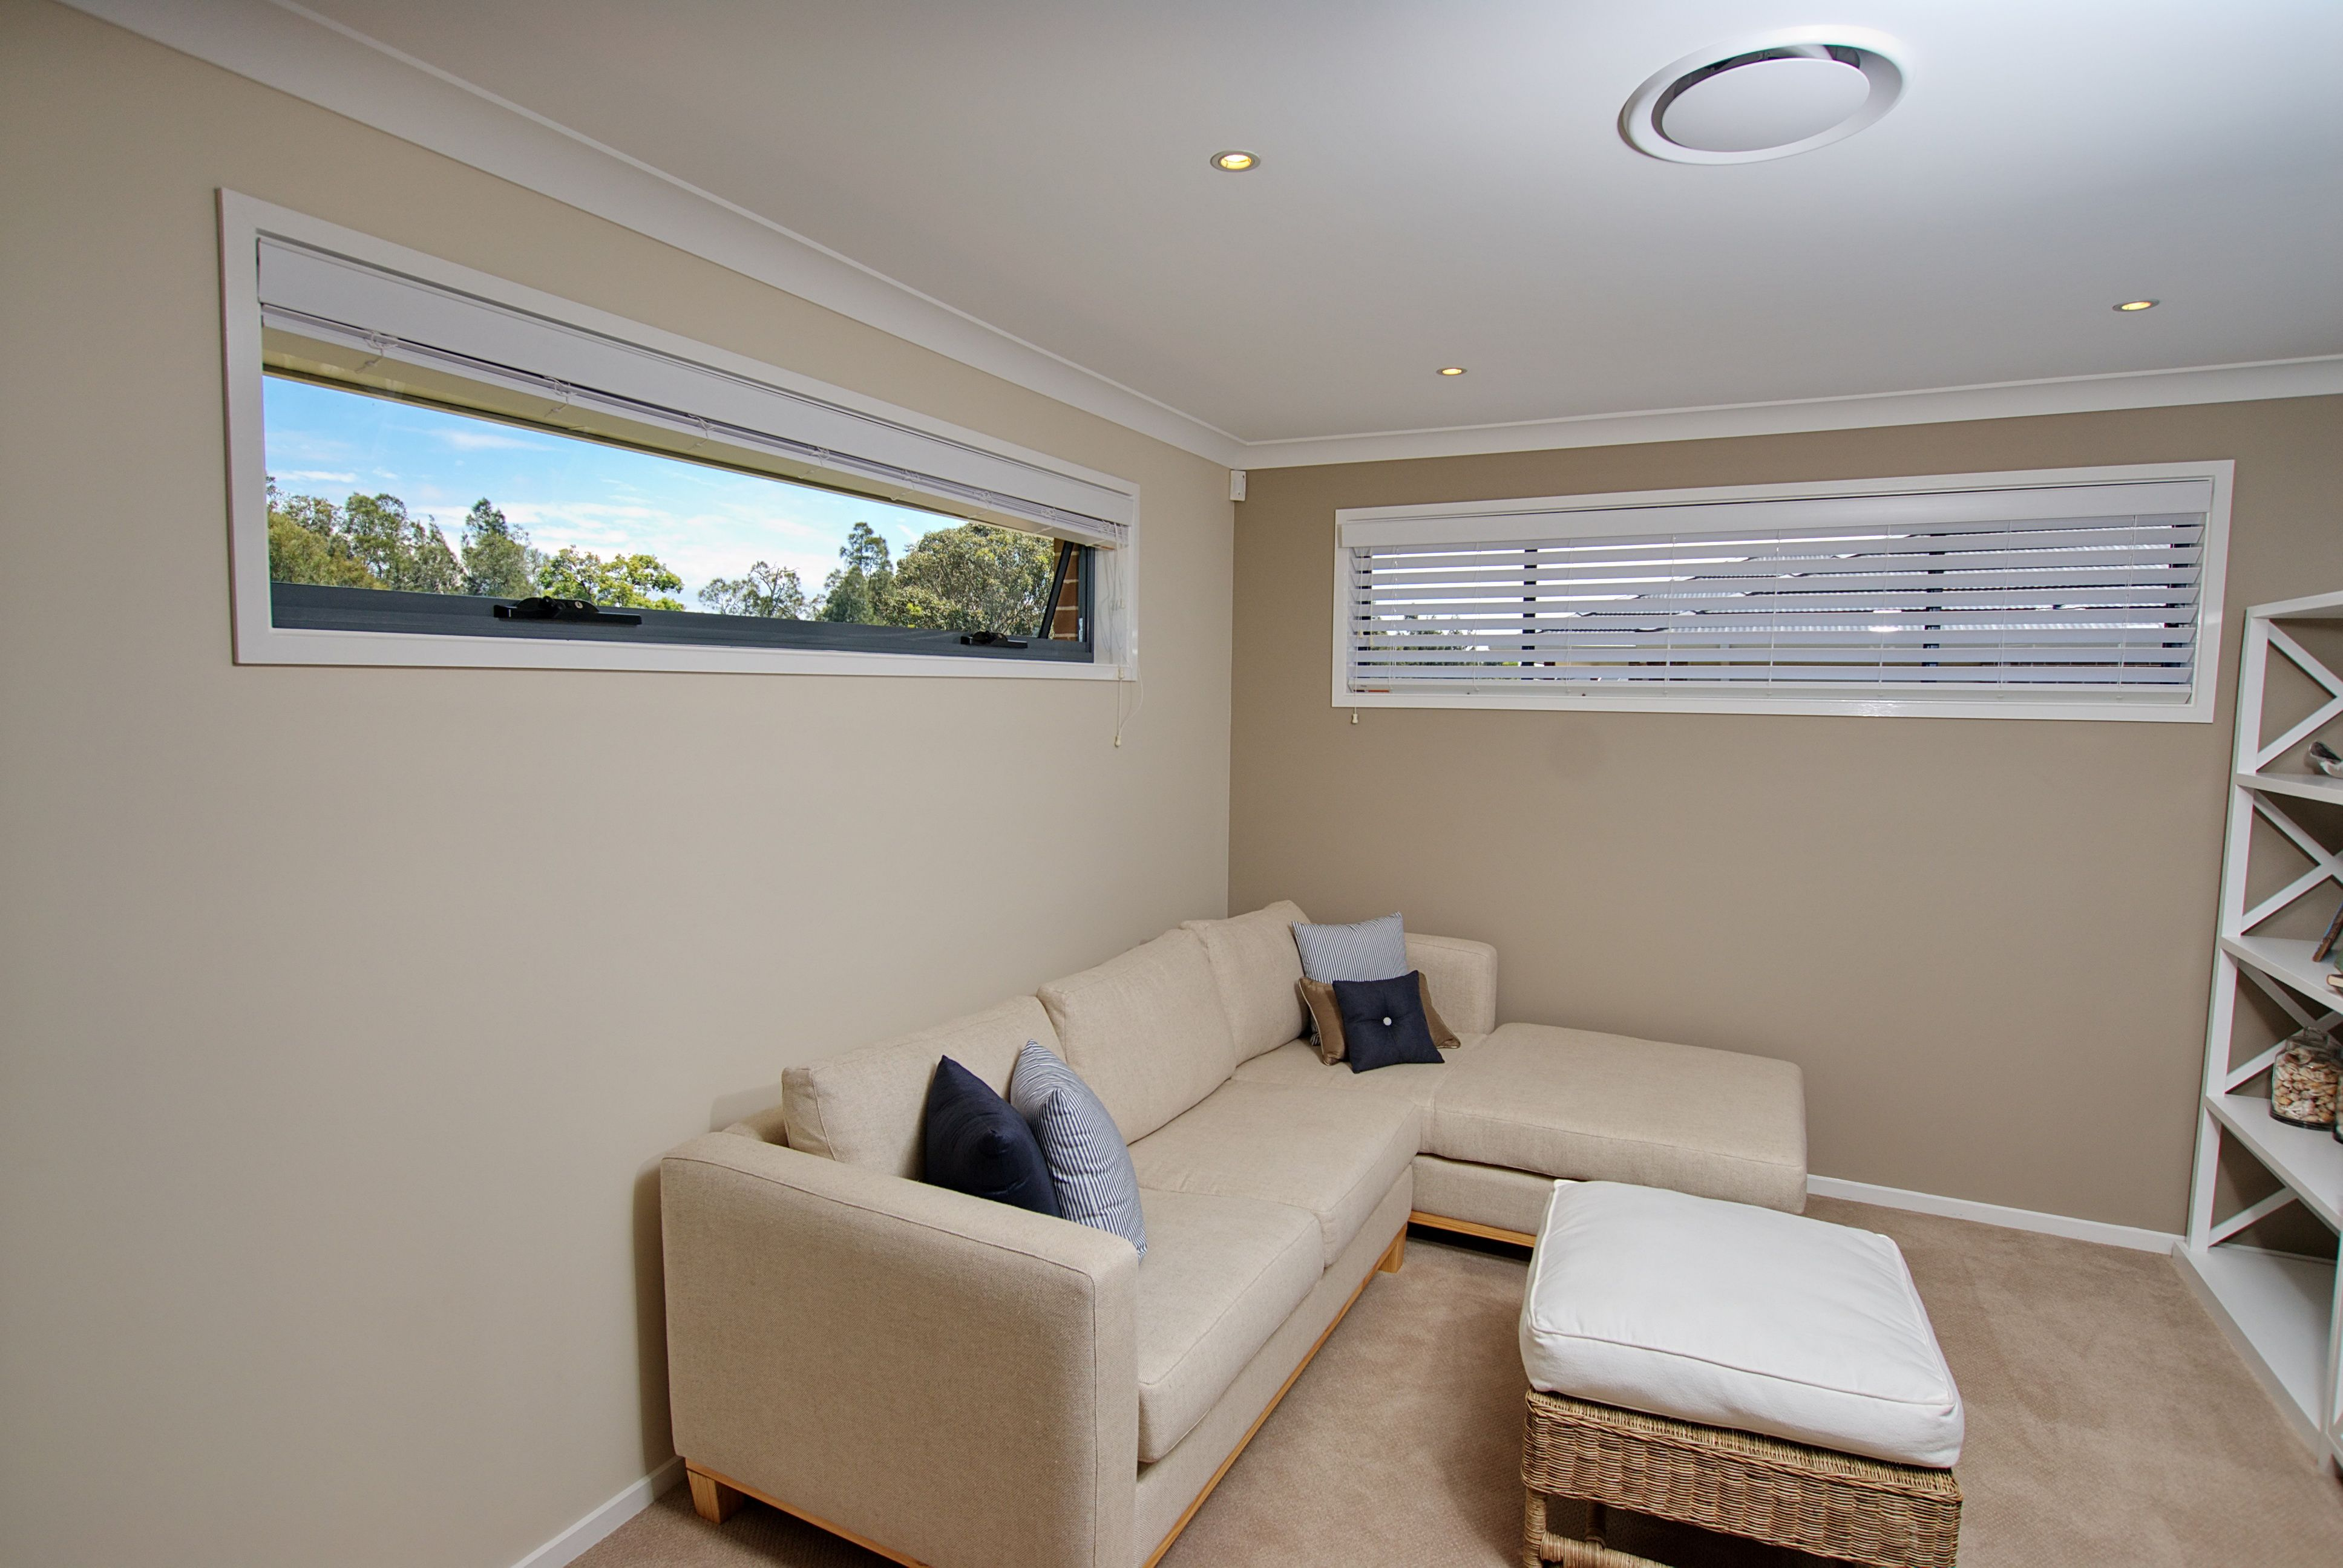 Awning Windows By Wideline Wwwwidelinecomau Basement Family Roomshome